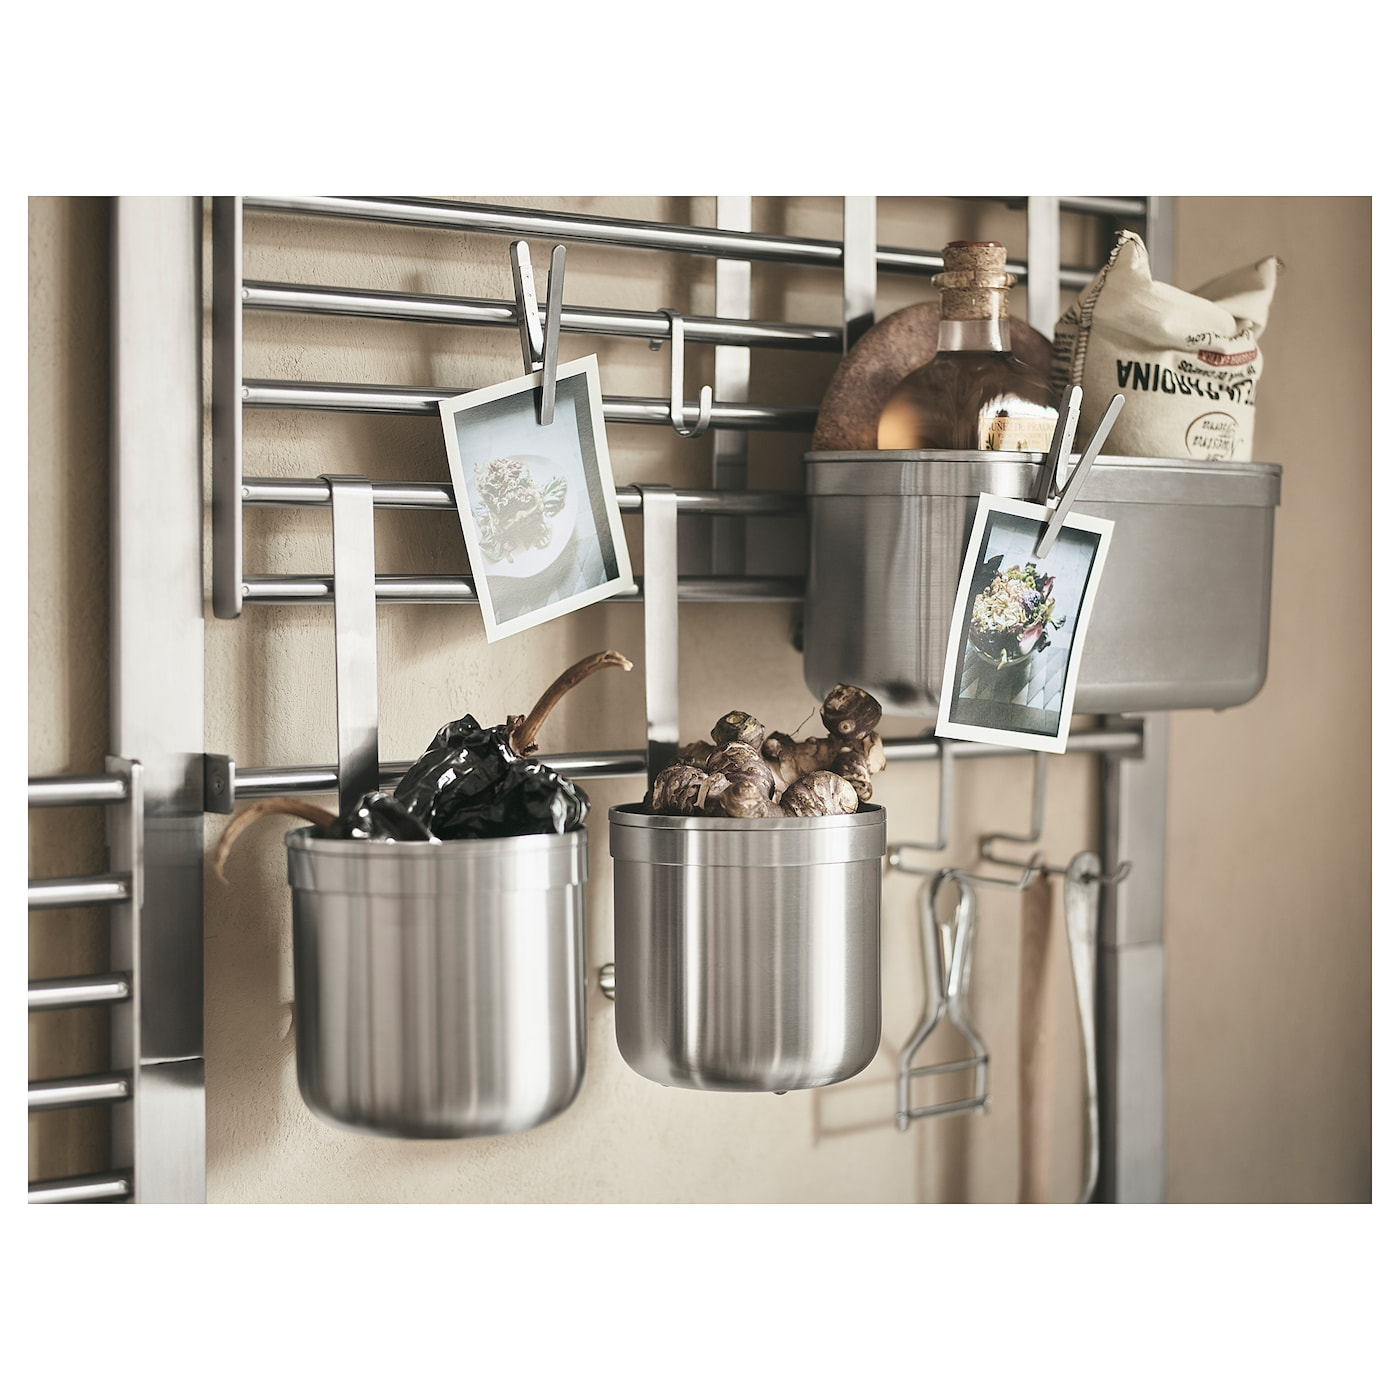 KUNGSFORS Container, stainless steel, 24x12x26.5 cm